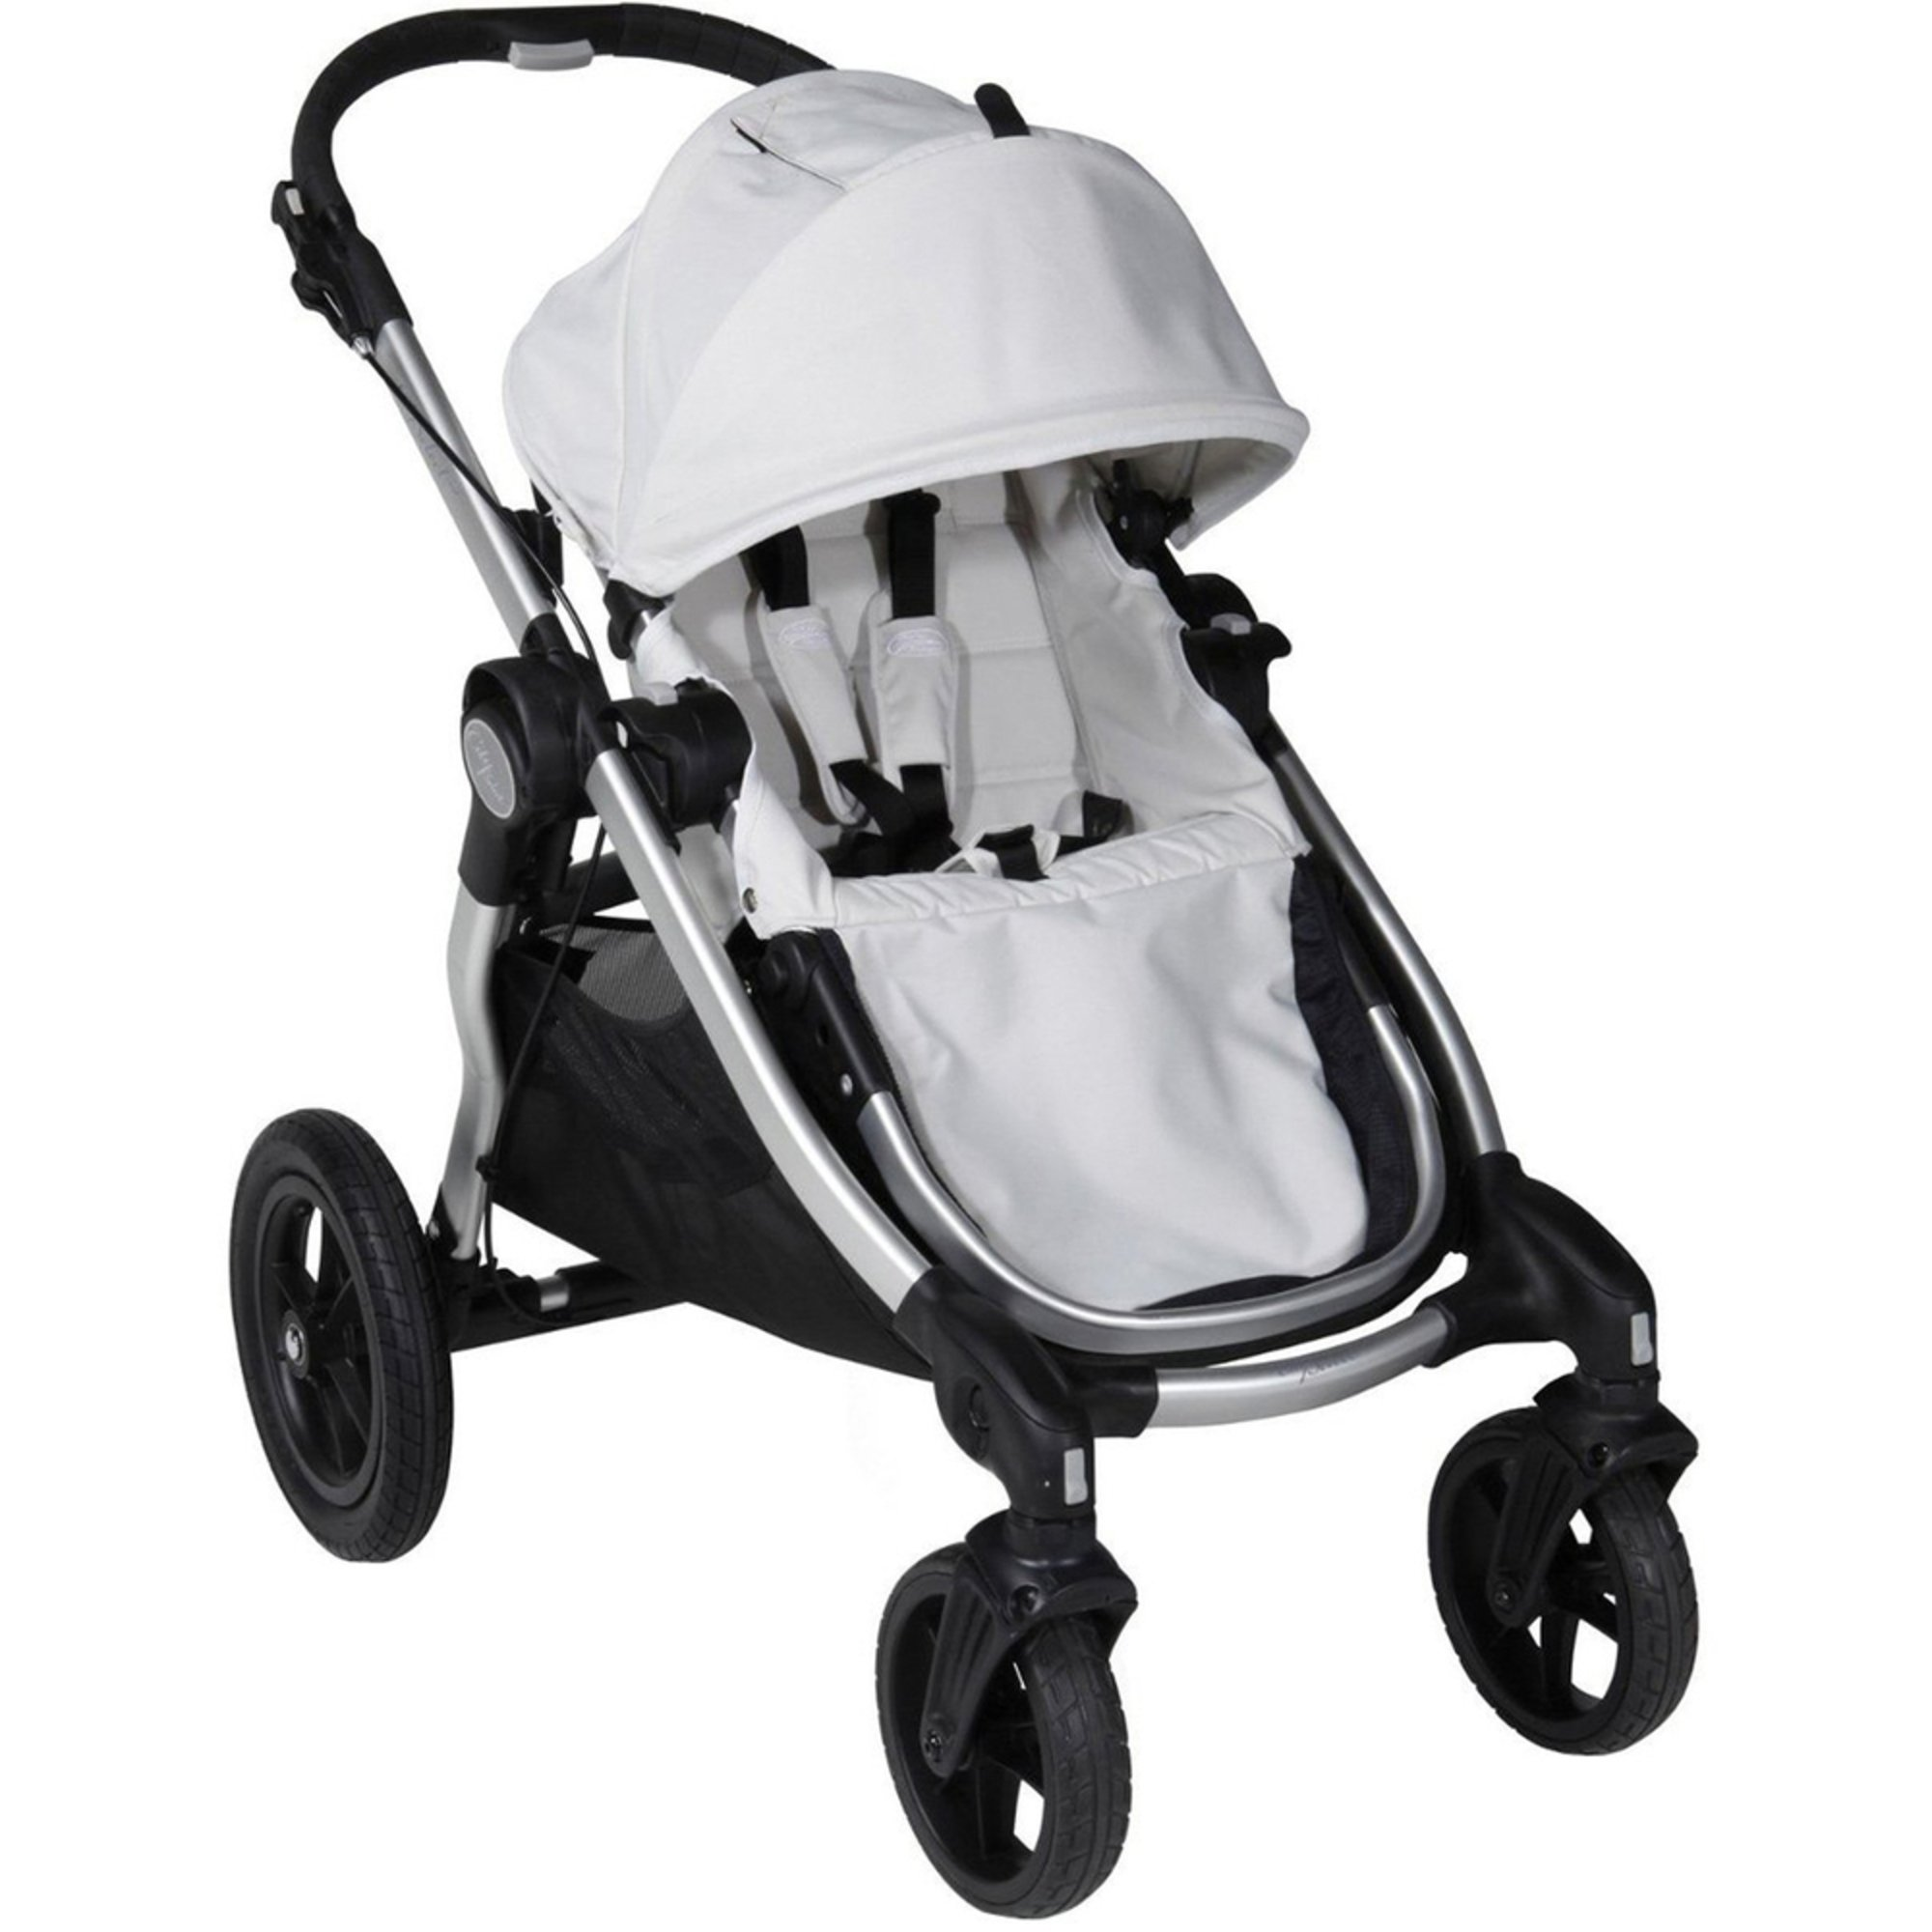 Strollers Coupon & Promo Codes Listed above you'll find some of the best strollers coupons, discounts and promotion codes as ranked by the users of football-watch-live.ml To use a coupon simply click the coupon code then enter the code during the store's checkout process.